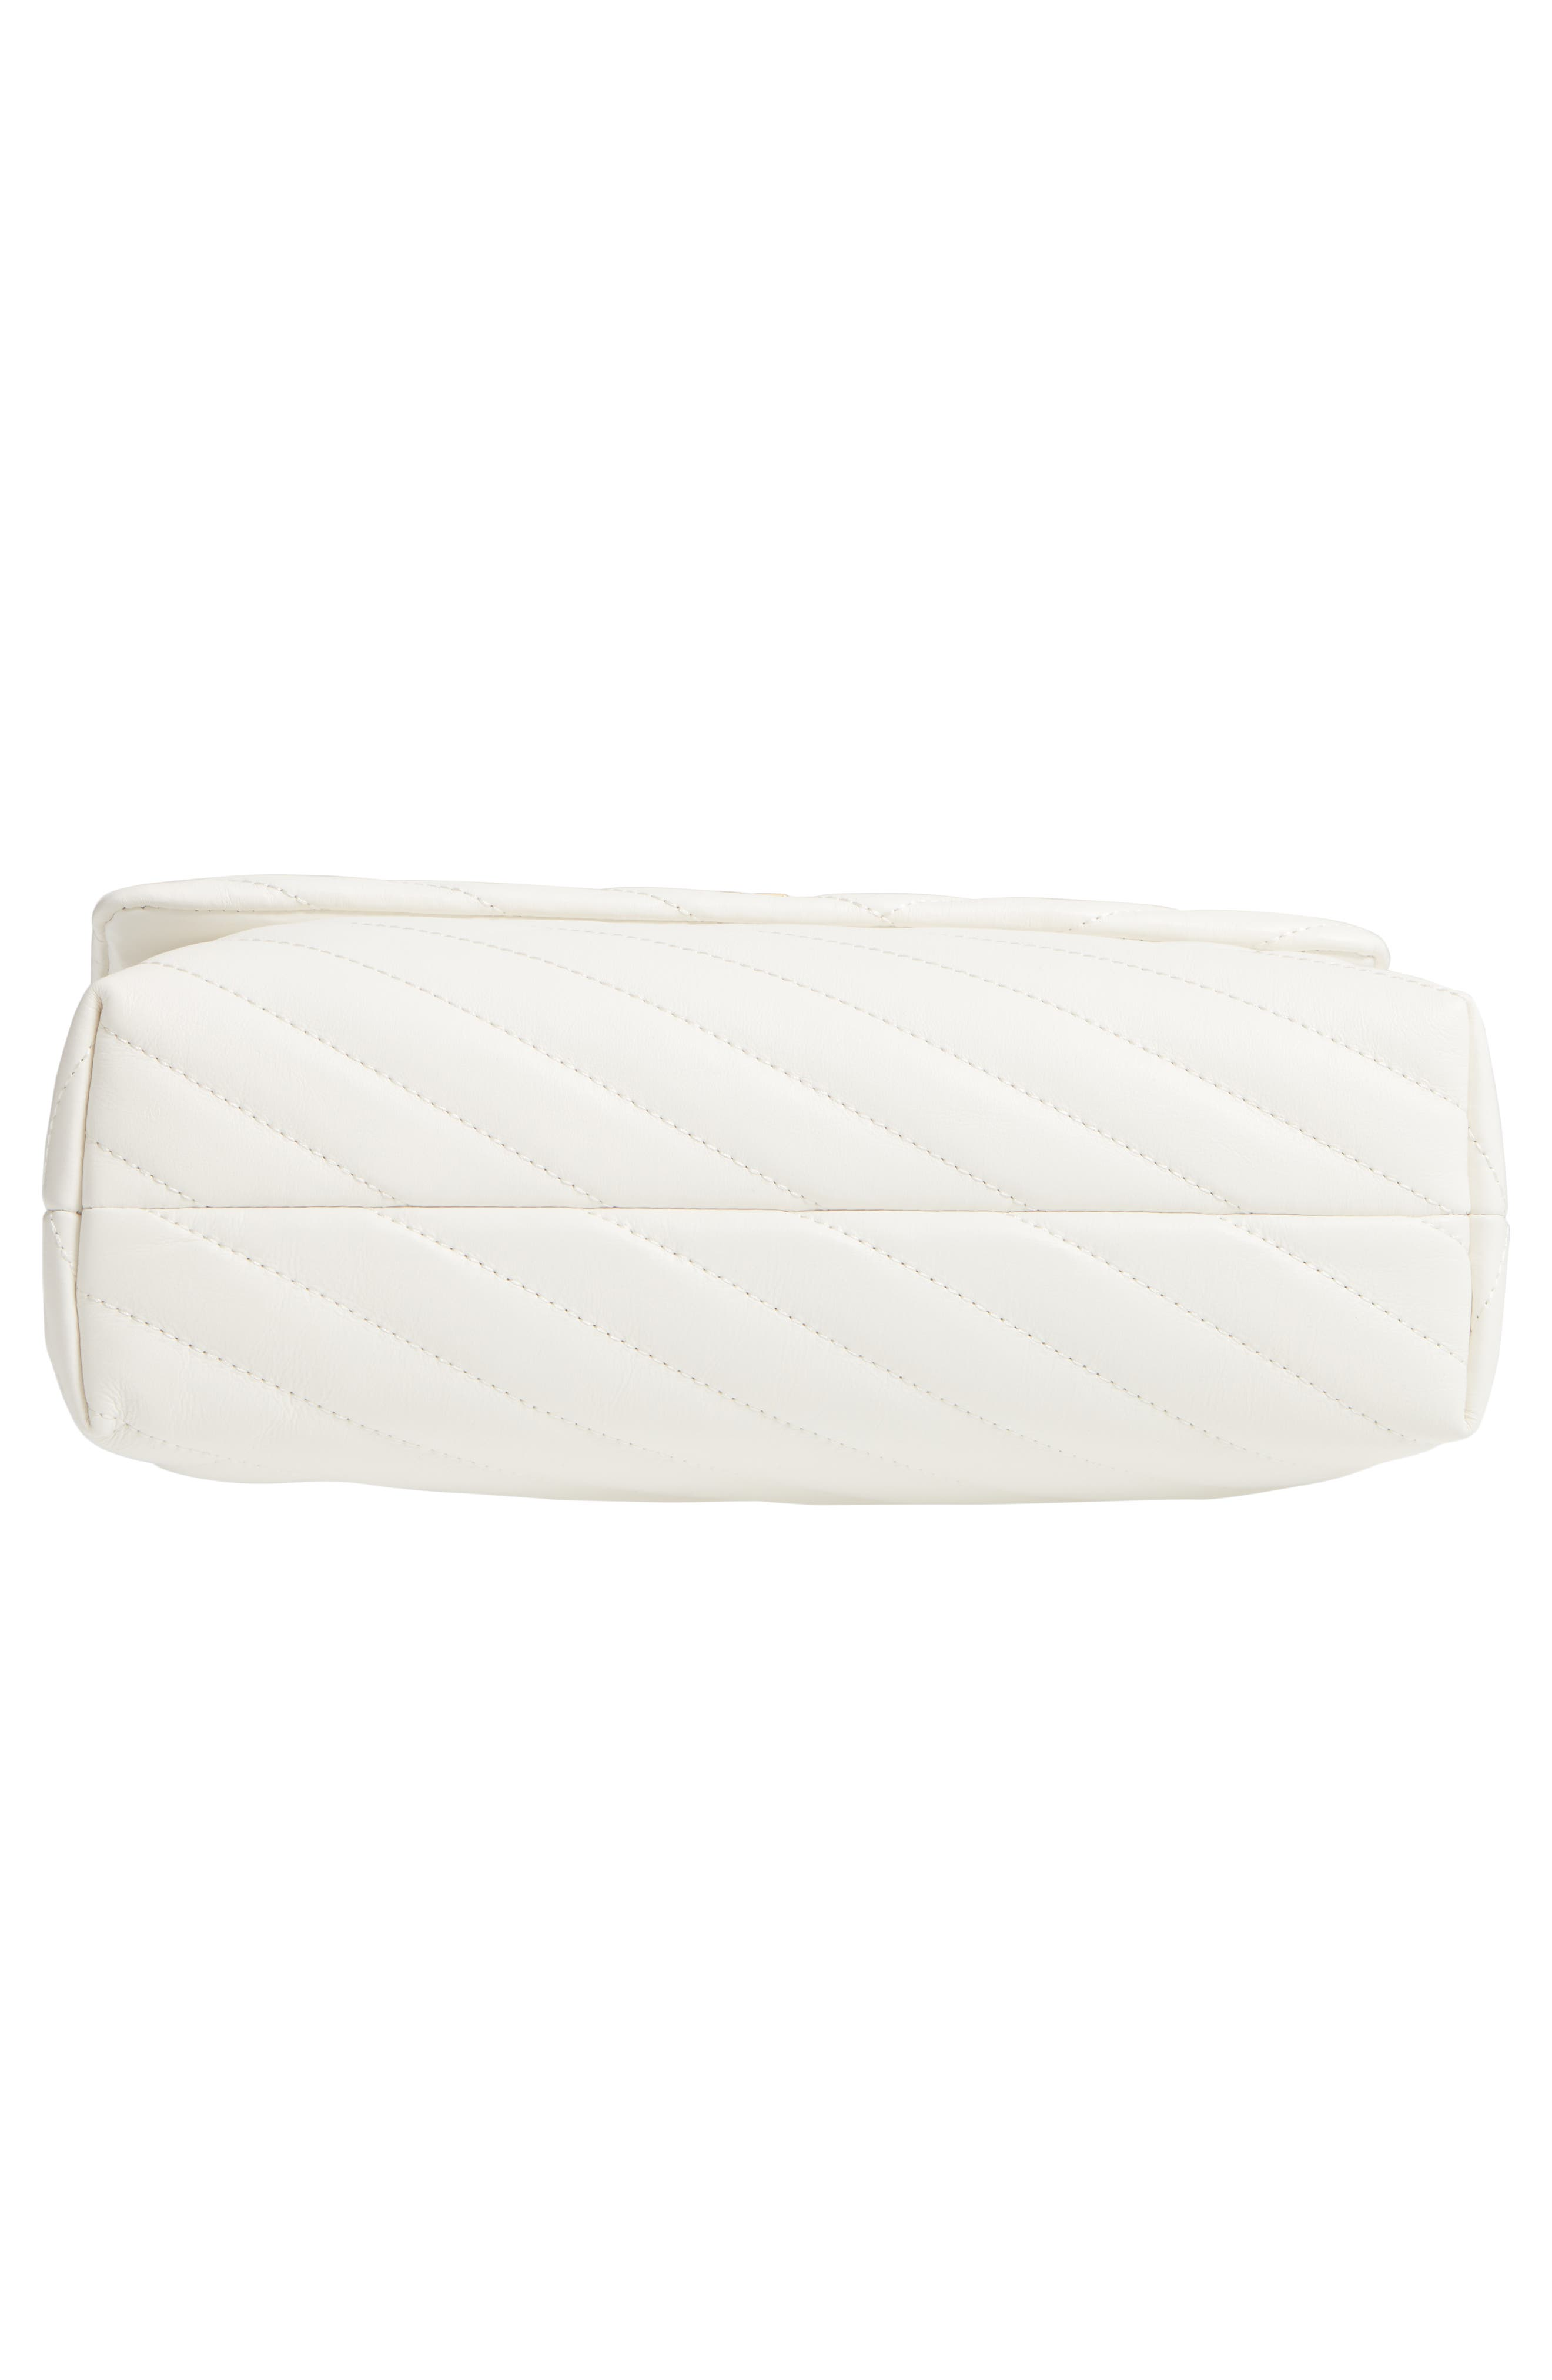 TORY BURCH, Kira Chevron Quilted Leather Shoulder Bag, Alternate thumbnail 7, color, NEW IVORY